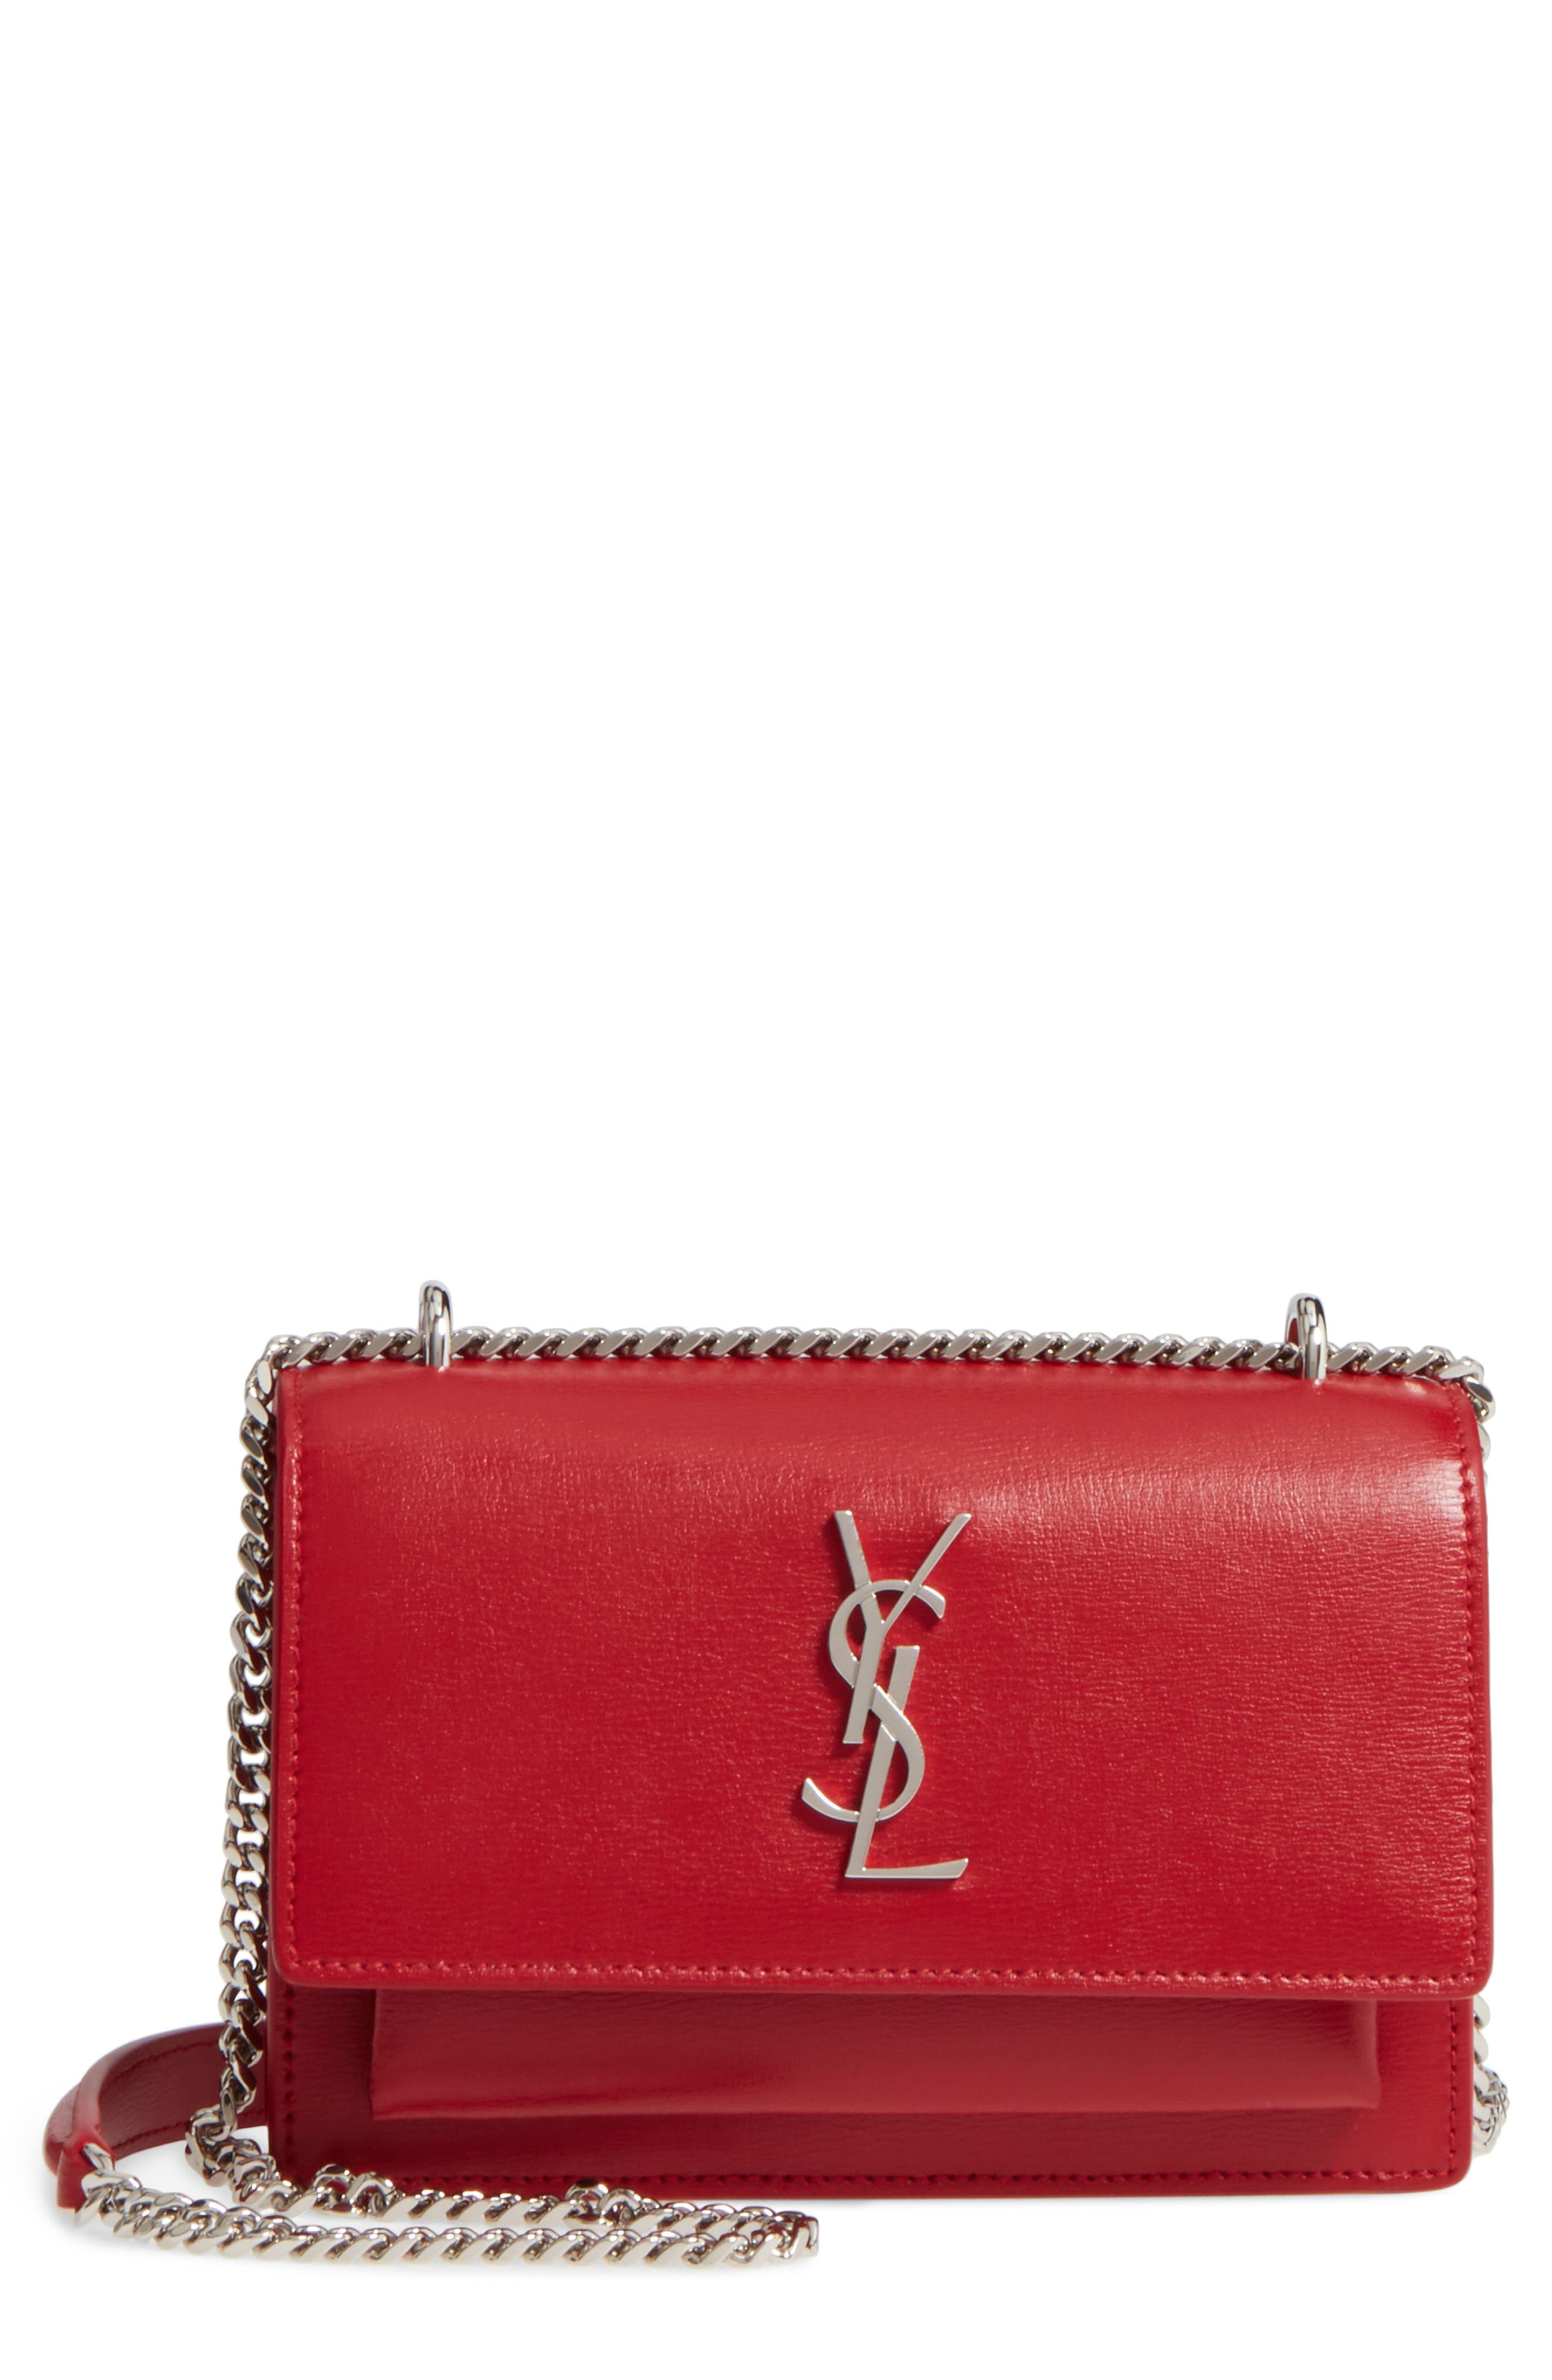 Saint Laurent Sunset Leather Wallet on a Chain